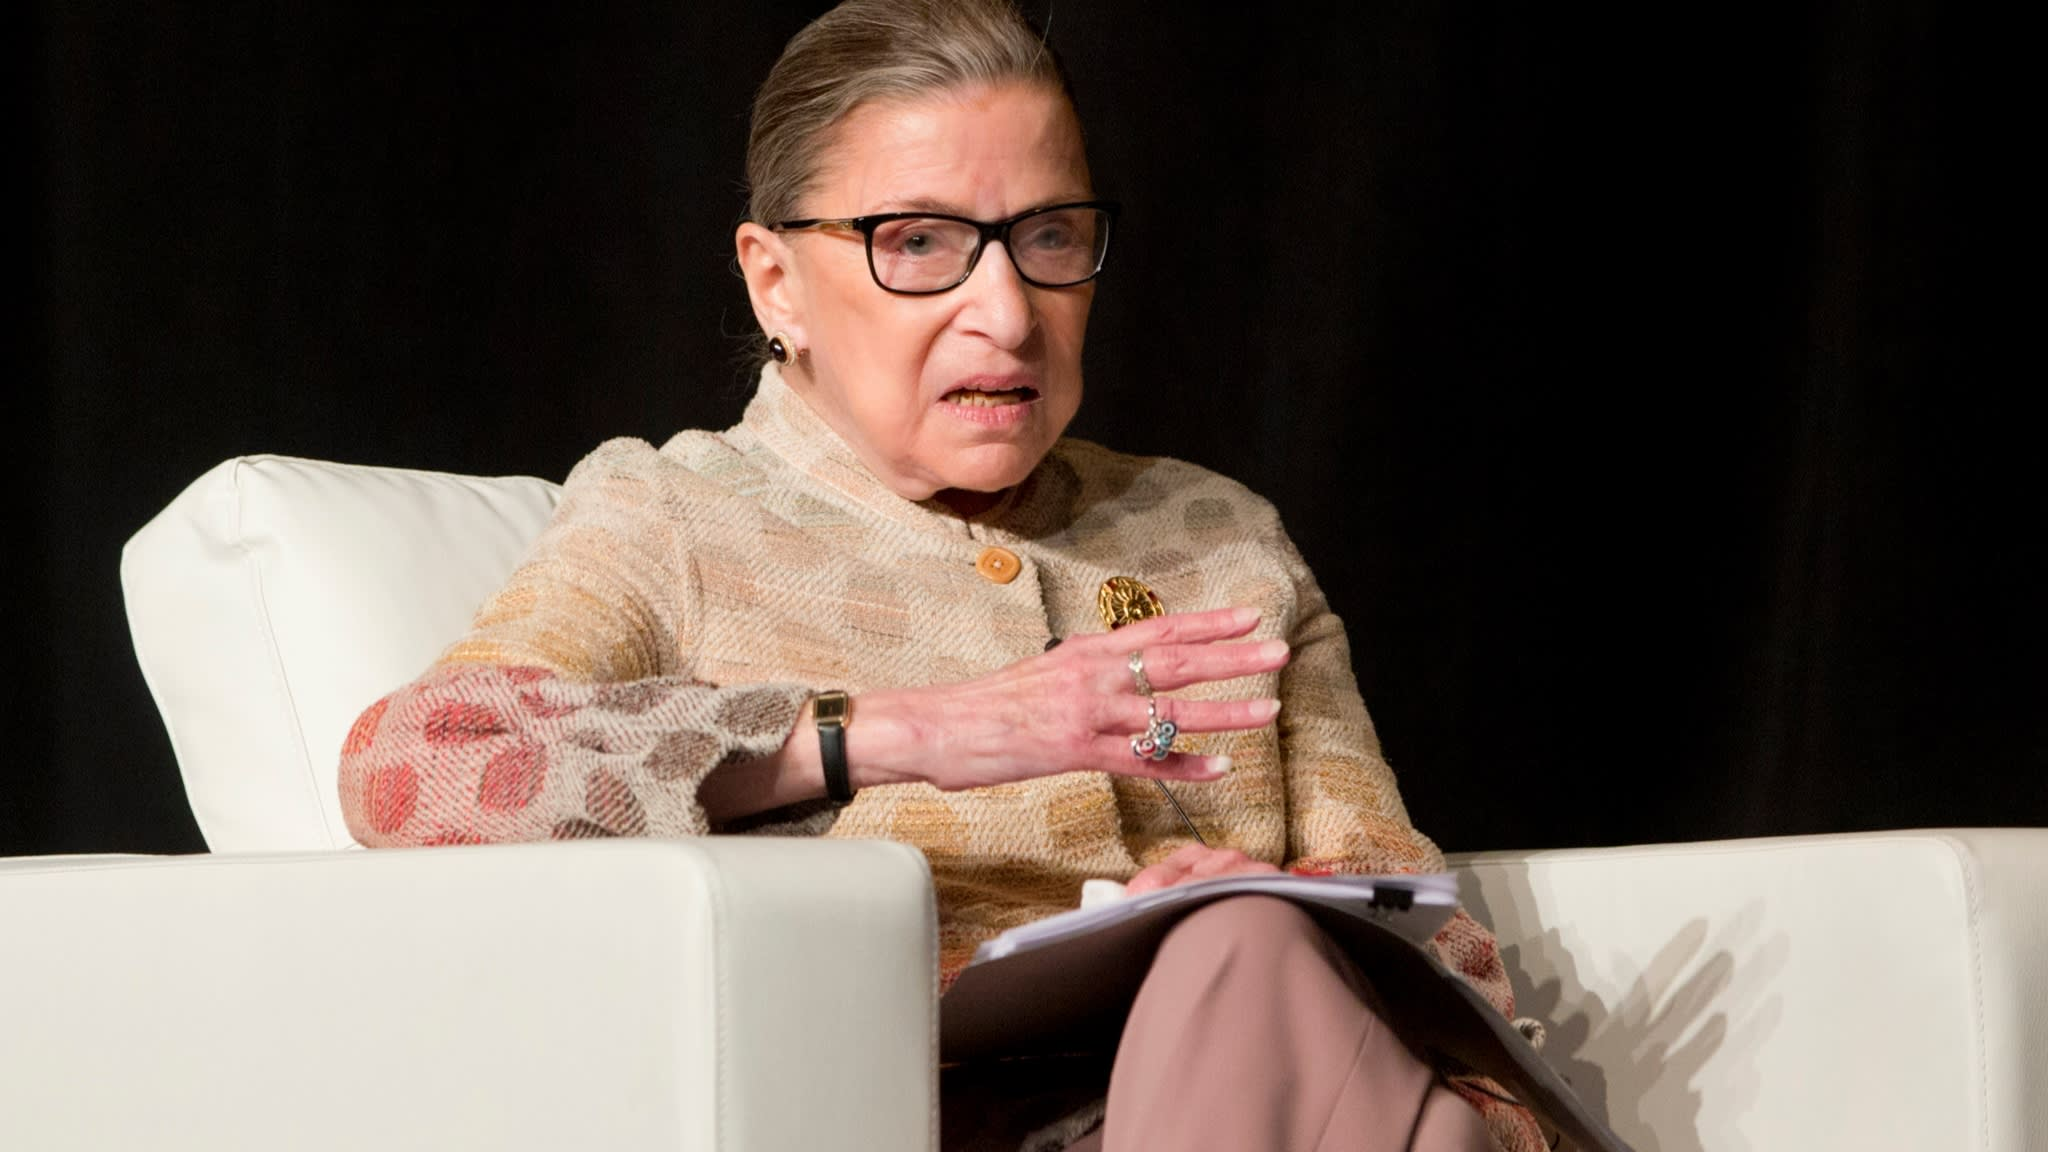 US Supreme Court Justice Ginsburg fractures ribs